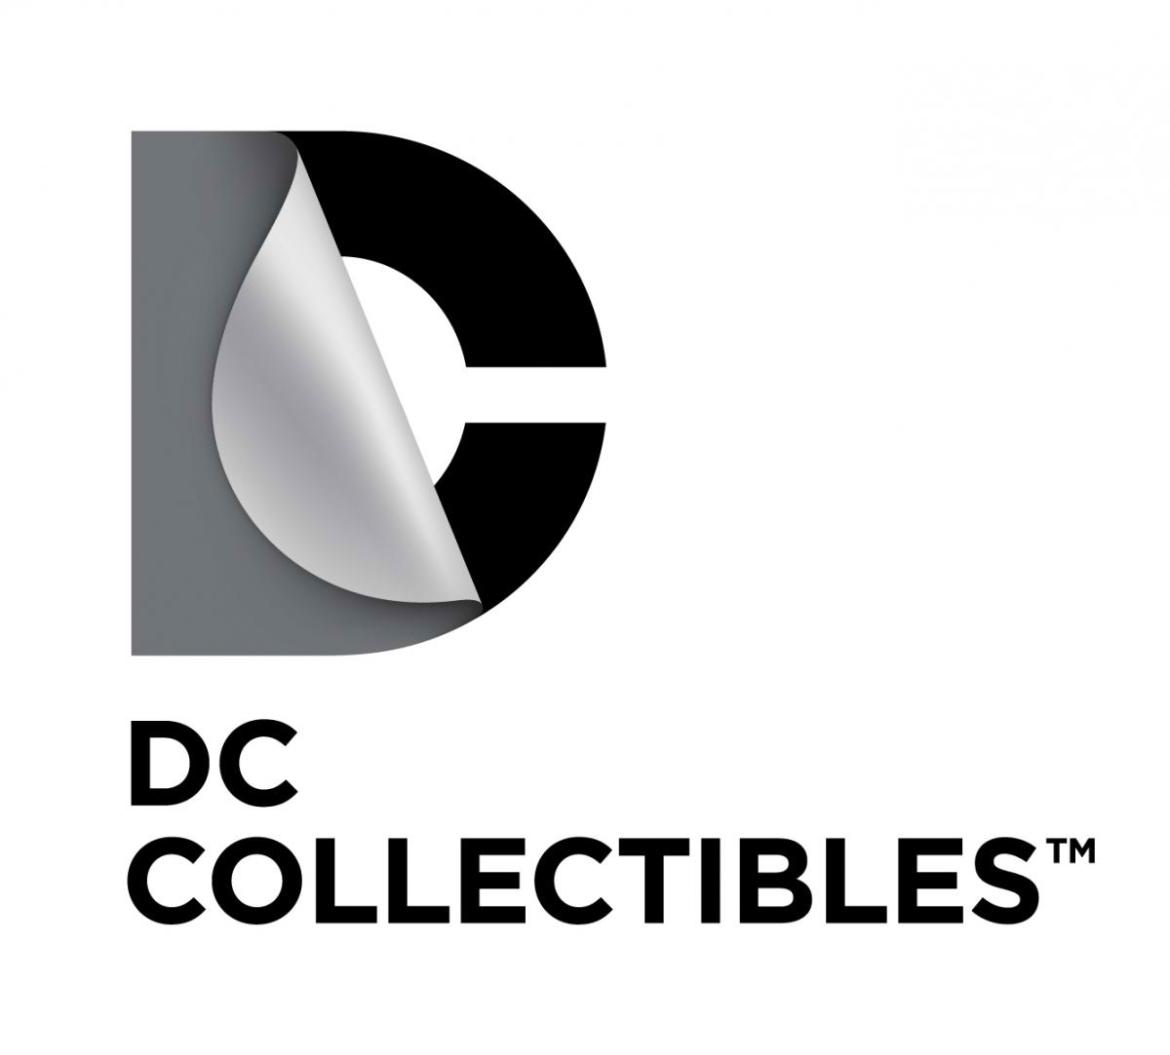 DC_Collectibles_tm_vert_rgb DC Collectibles to sell products directly to fans